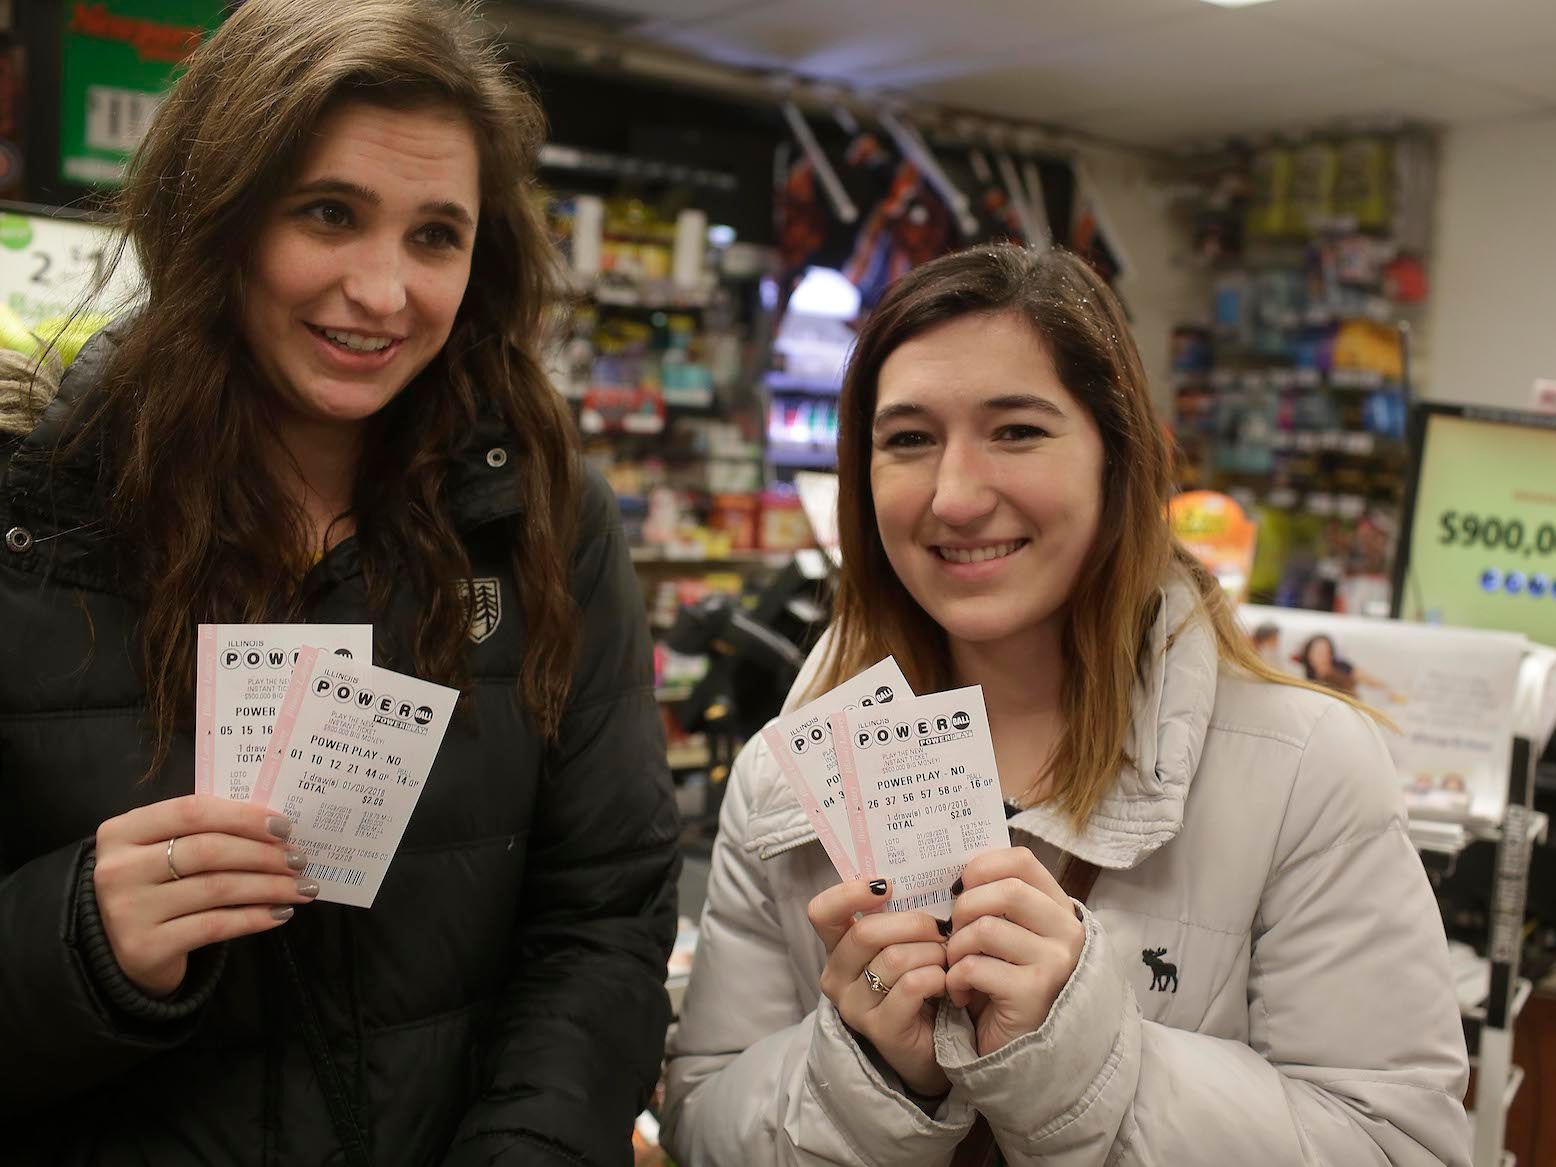 Powerball prizes and payouts